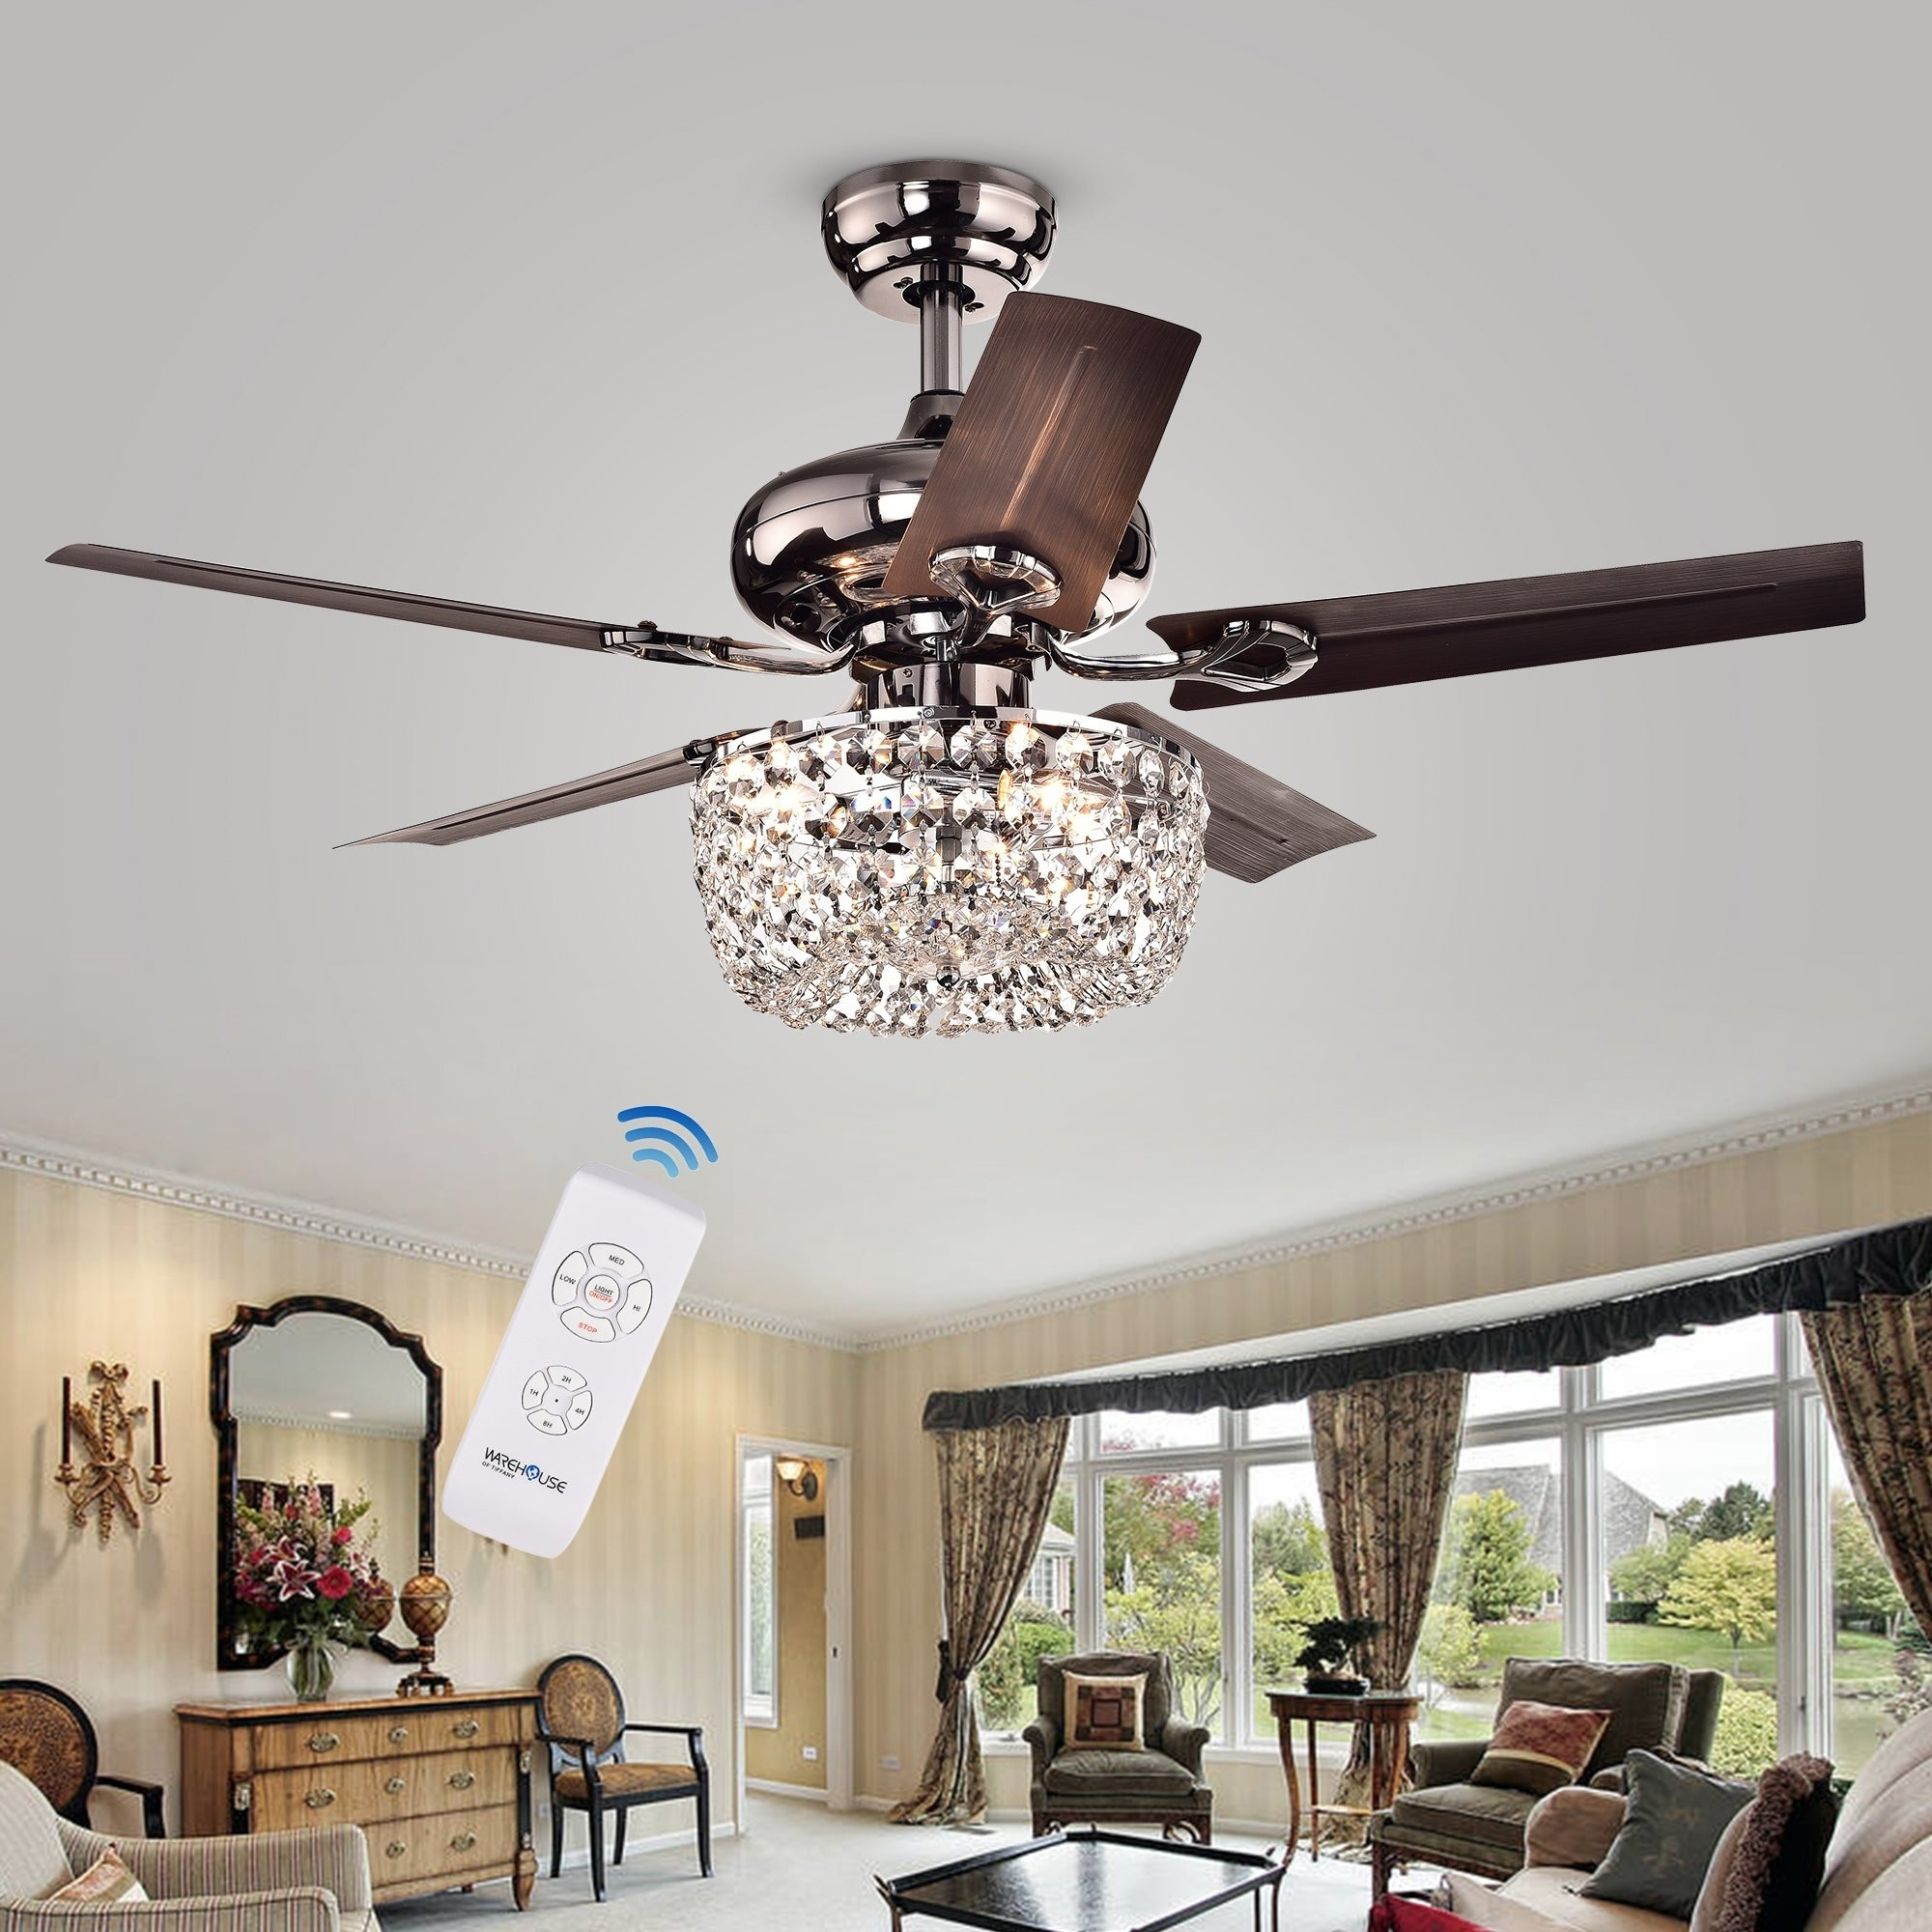 white with cover fan stunning awesome metal images kit fans light remarkable pinterest black crystals about inside chandelier chandeliers elegant ceiling and for lamp on